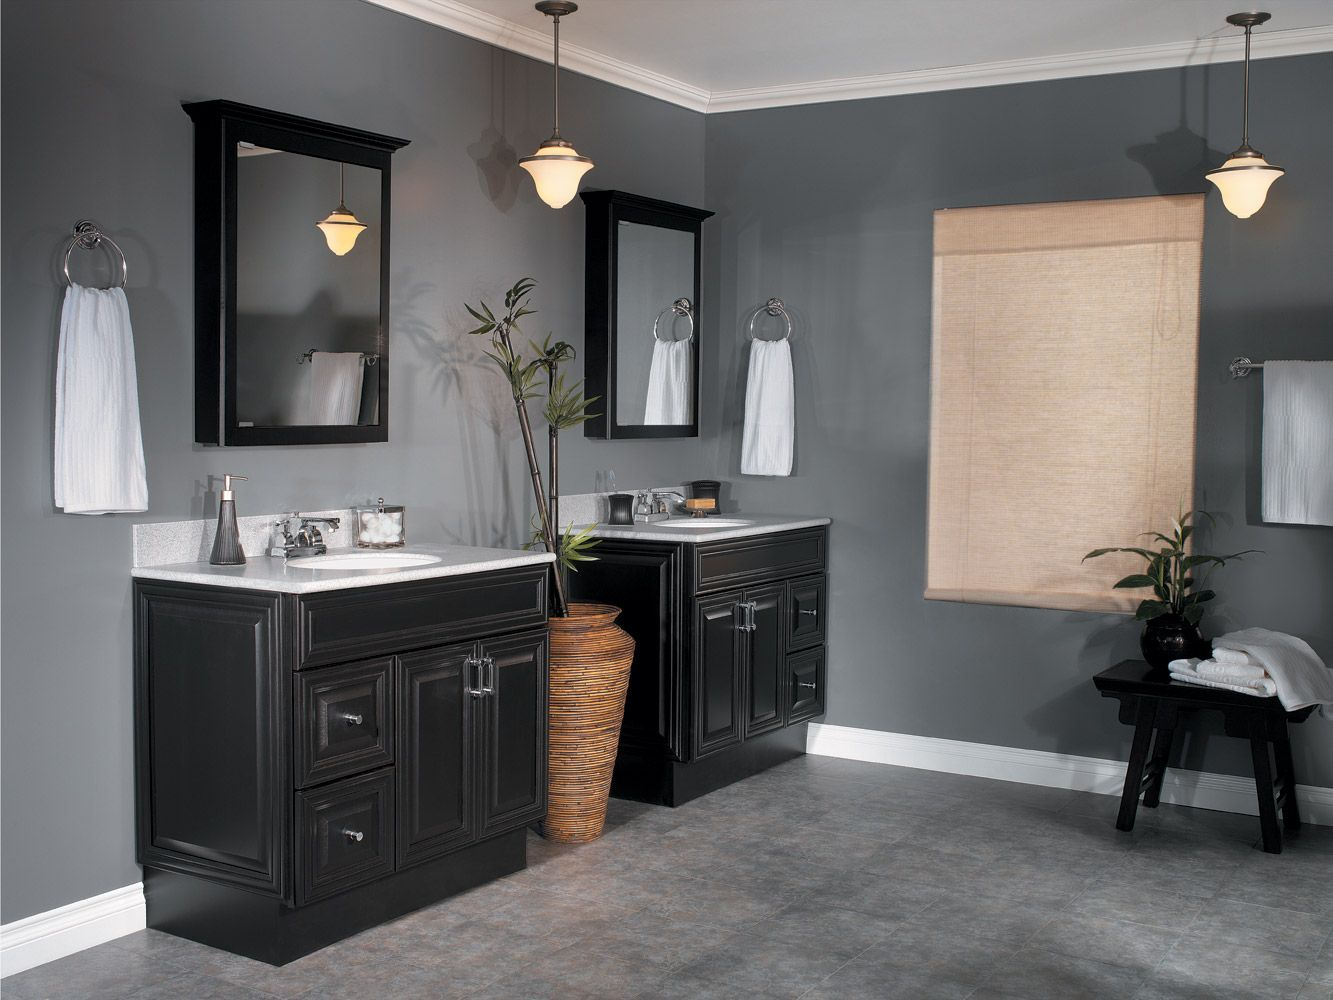 images bathroom dark wood vanity tile   Bathroom Wall